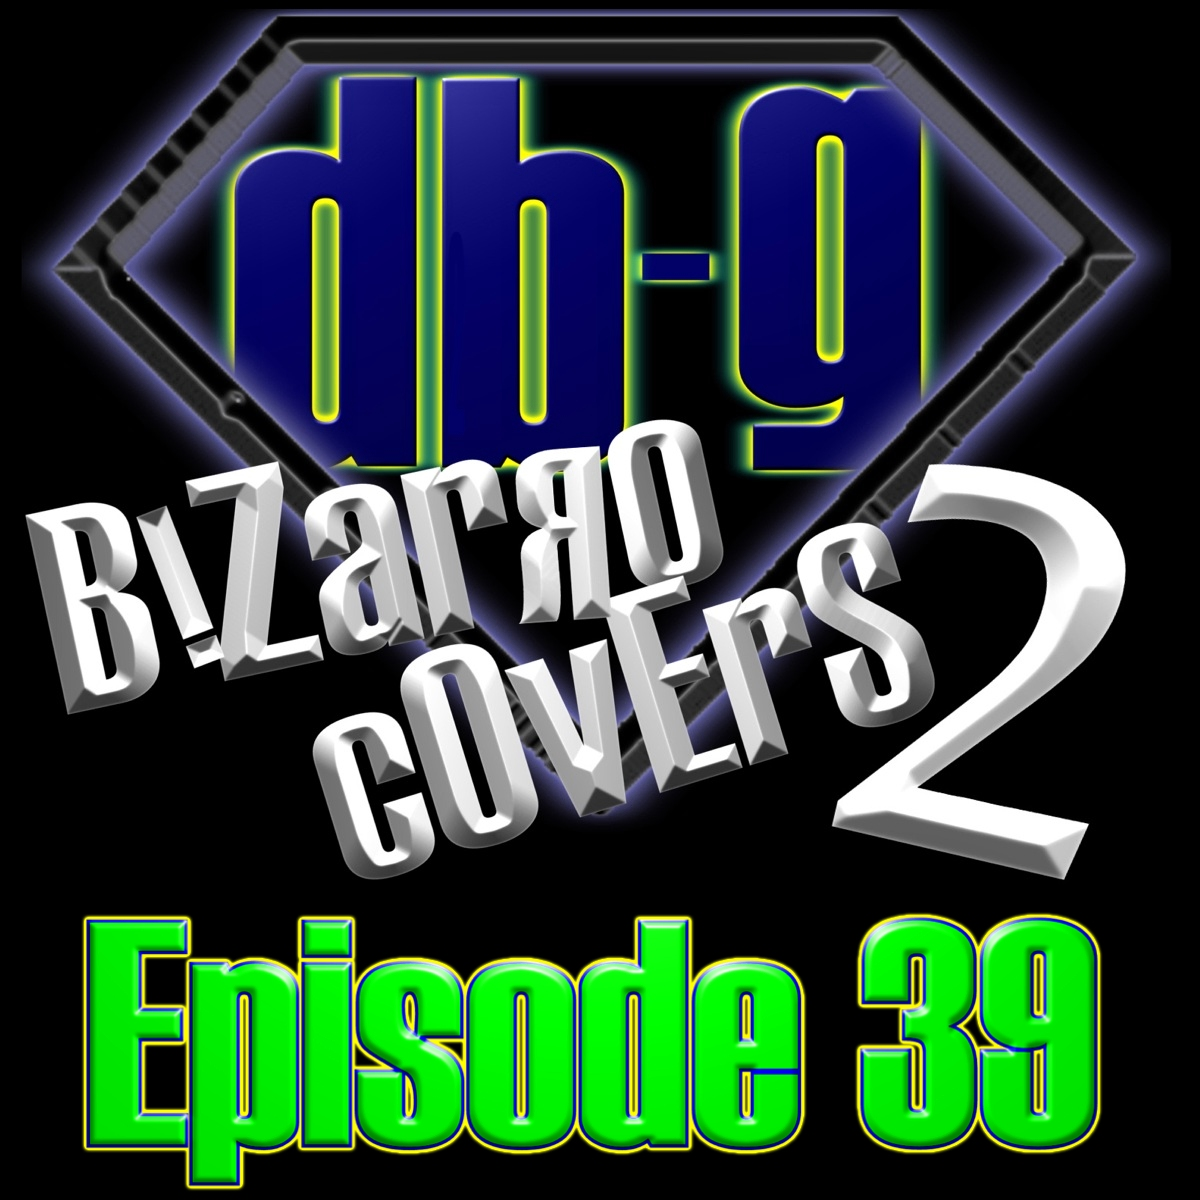 Episode 39 - Bizarro Covers 2